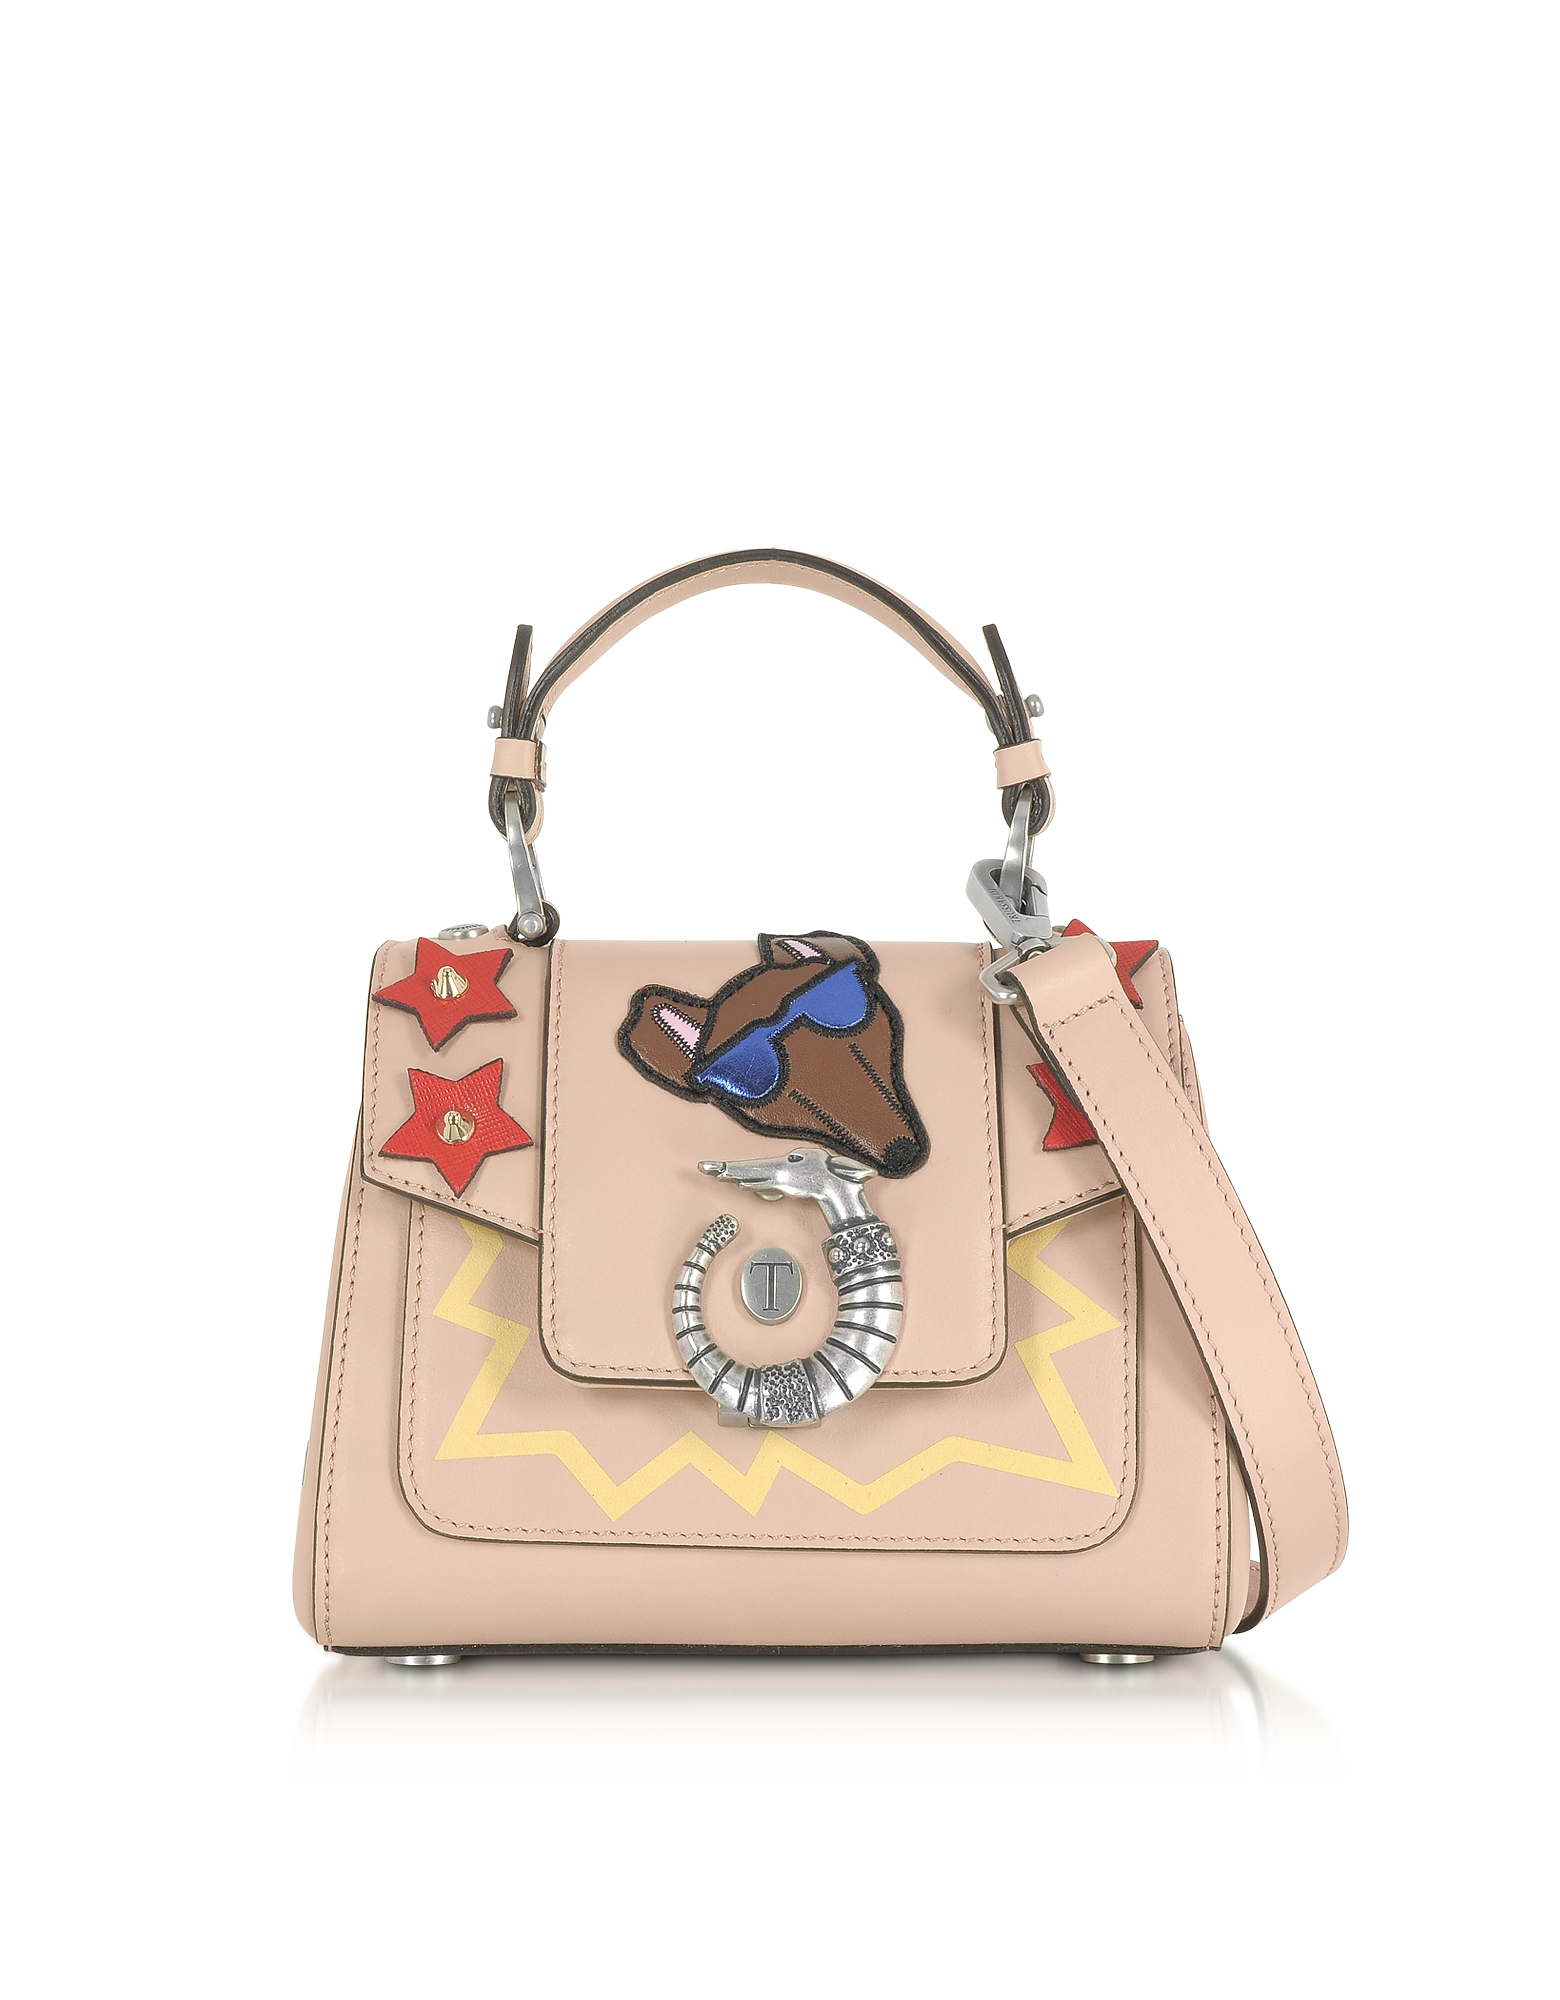 Trussardi Handbags, Lovy Joy Natural Leather Mini Crossbody Bag w/Emoticon Embroidery